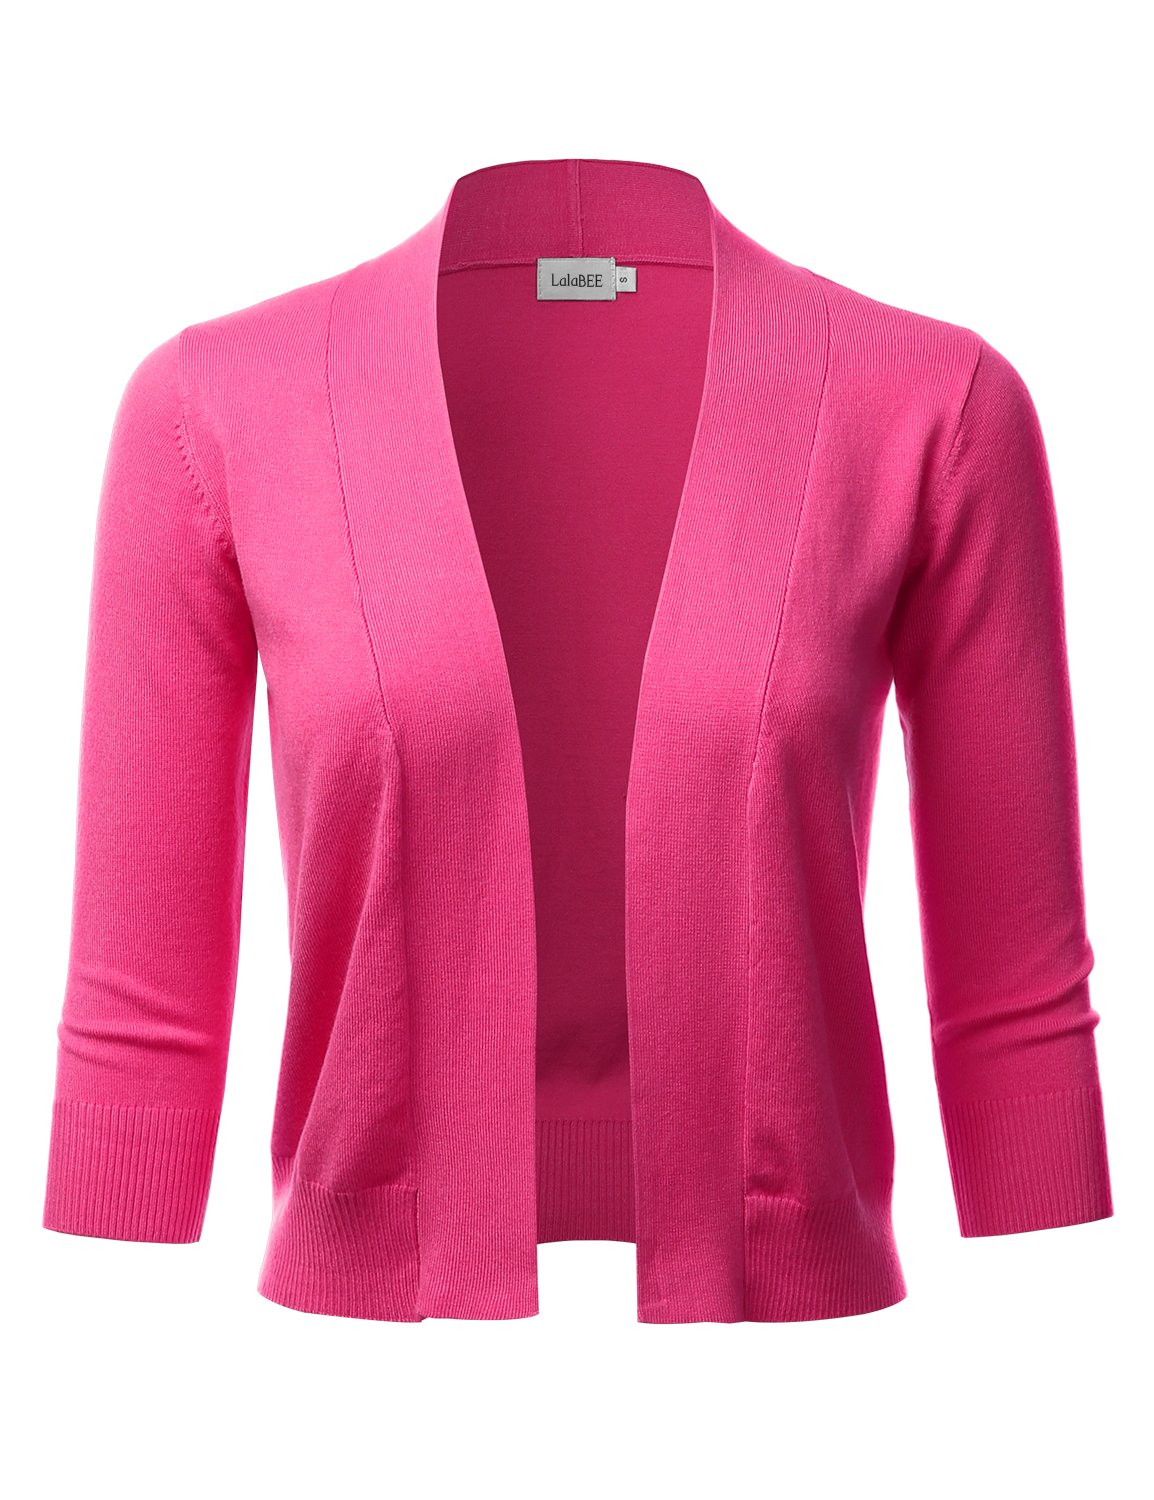 LALABEE Women's Classic 3/4 Sleeve Open Front Cropped Bolero Cardigan-Pink-M